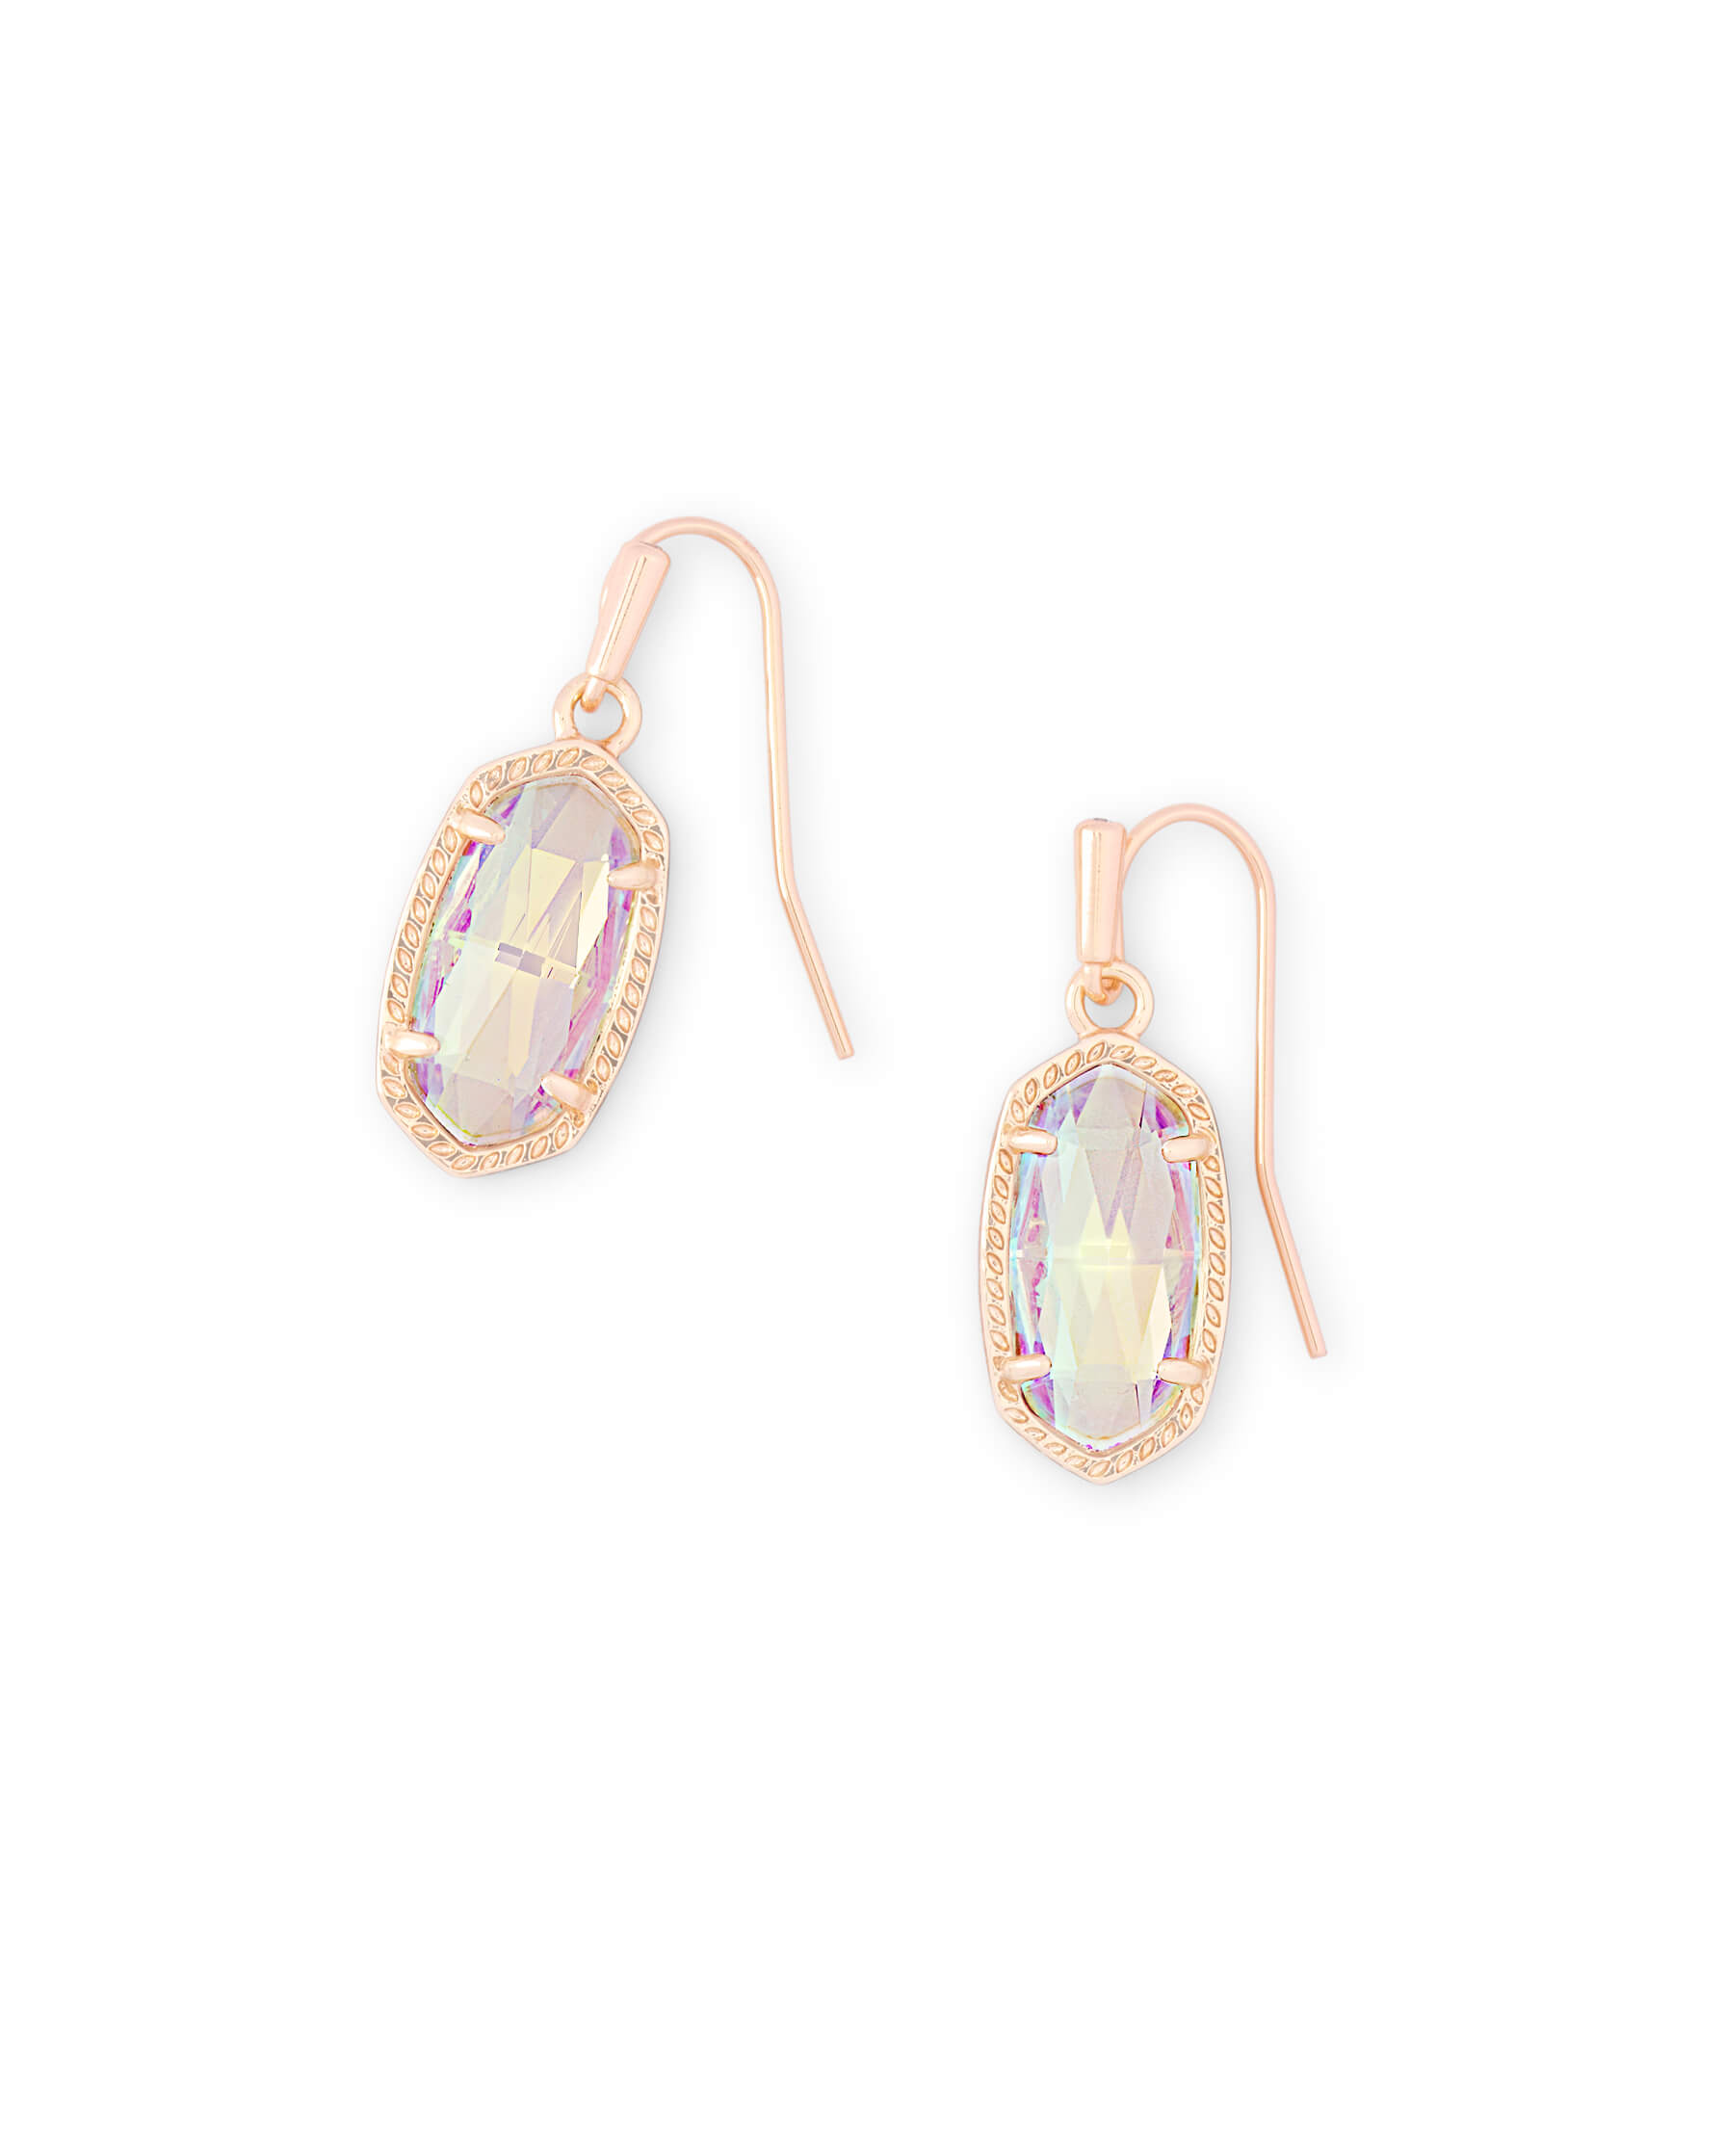 Lee Rose Gold Drop Earrings in Dichroic Glass